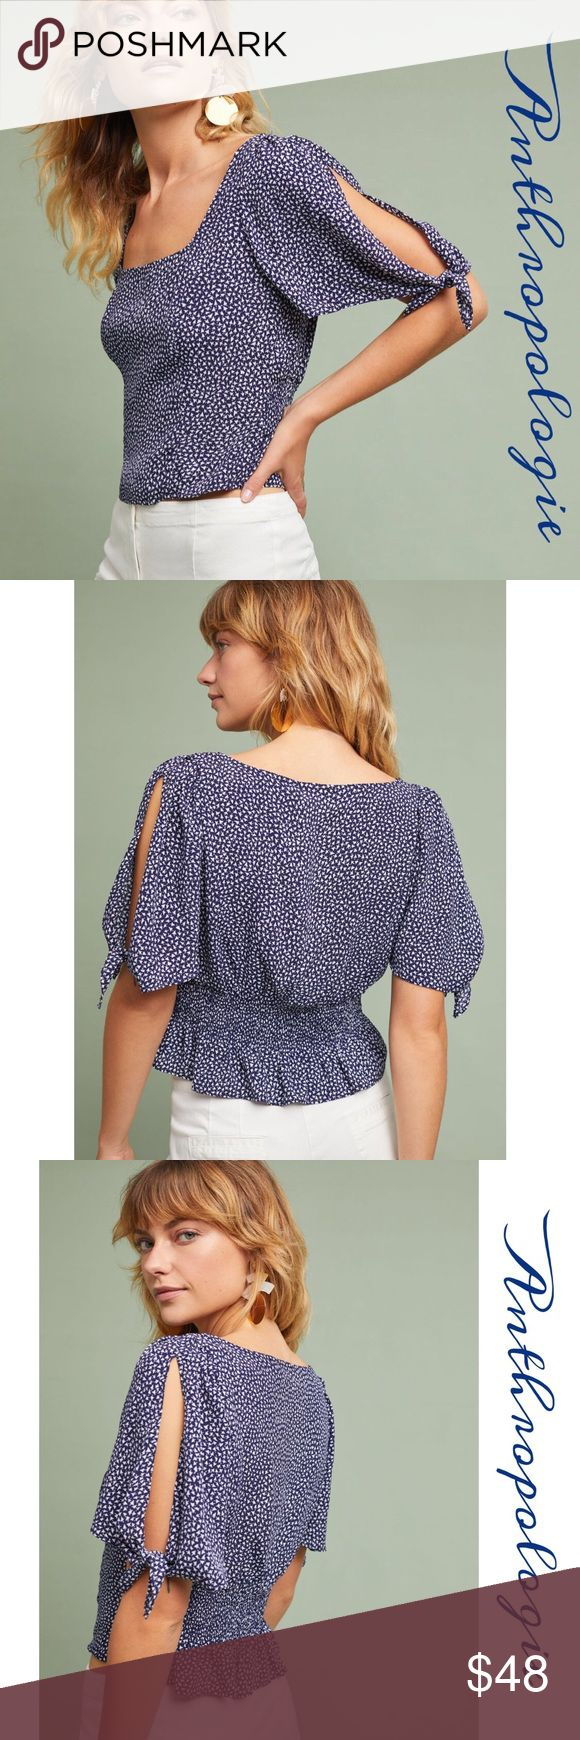 "Anthropologie Tie-Sleeve Top Mauve collection Blouse in navy and white patterned Viscose features a cropped silhouette, tie- sleeve details, easy pull- on style. An anthropologie exclusive. Approx measurements: length 21"", bust 38-40"", waist 34-36"", stretchy back for hip area Anthropologie Tops Blouses"